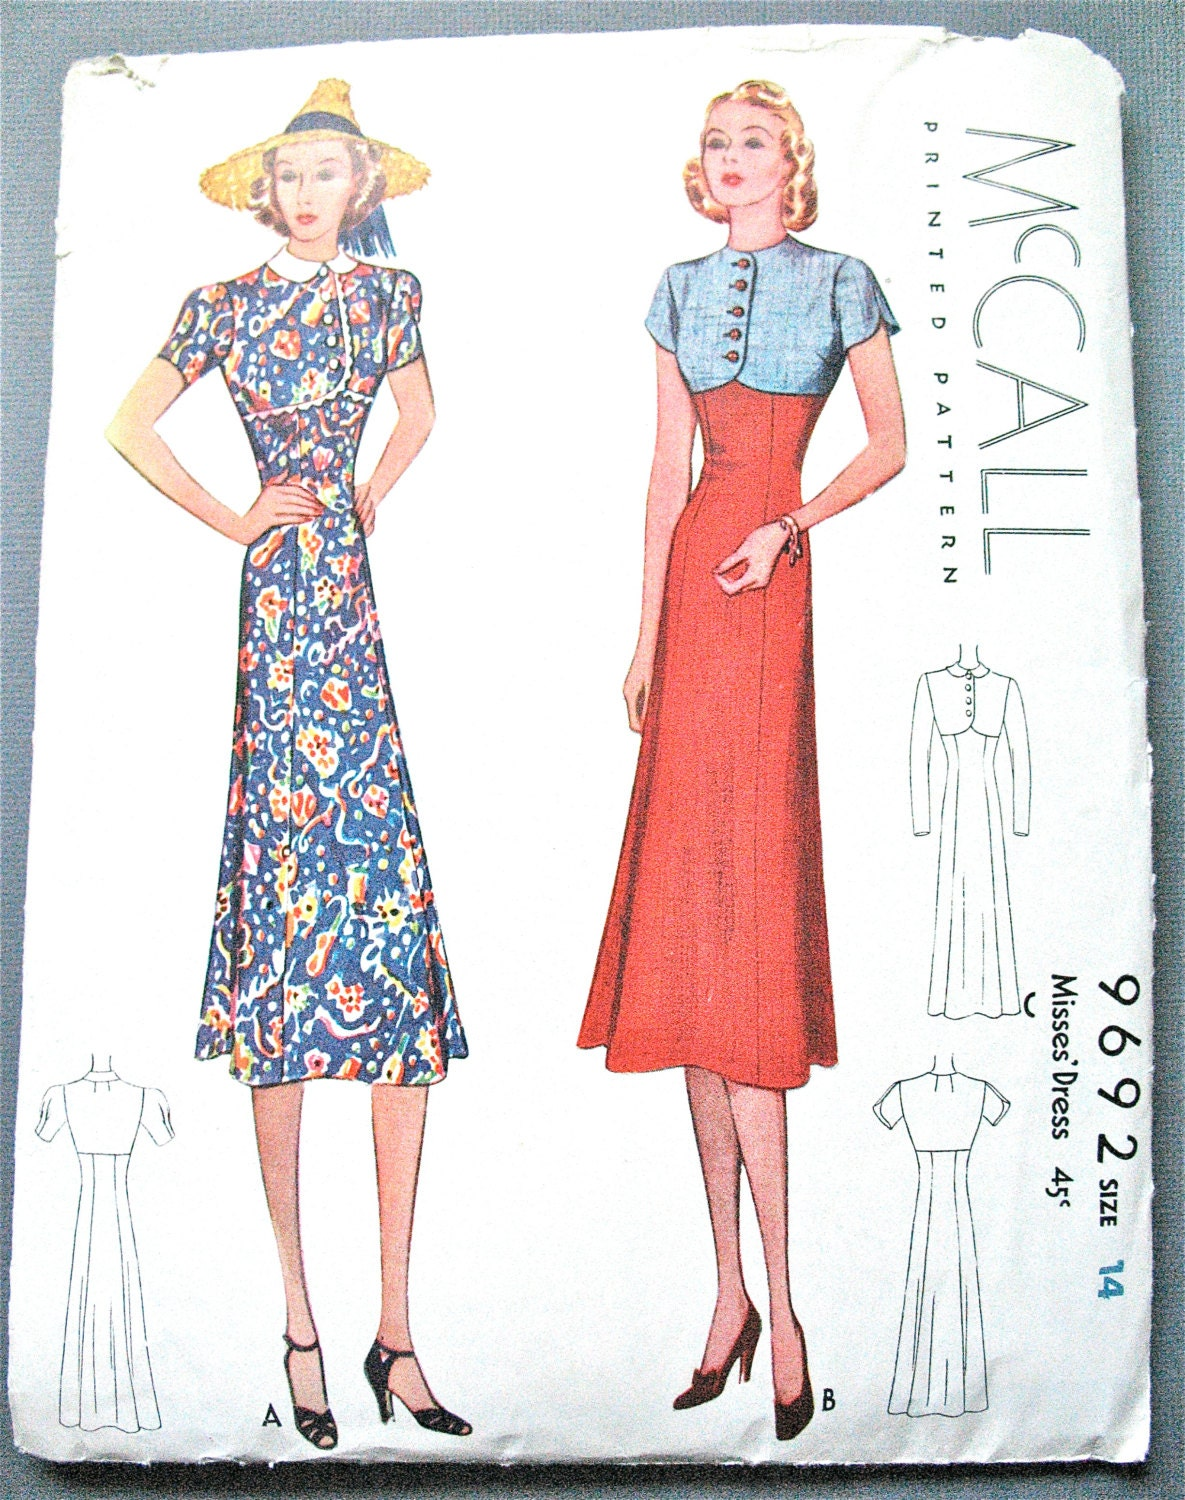 Vintage 1930s Sewing Misses' Dress Pattern McCall by Fancywork